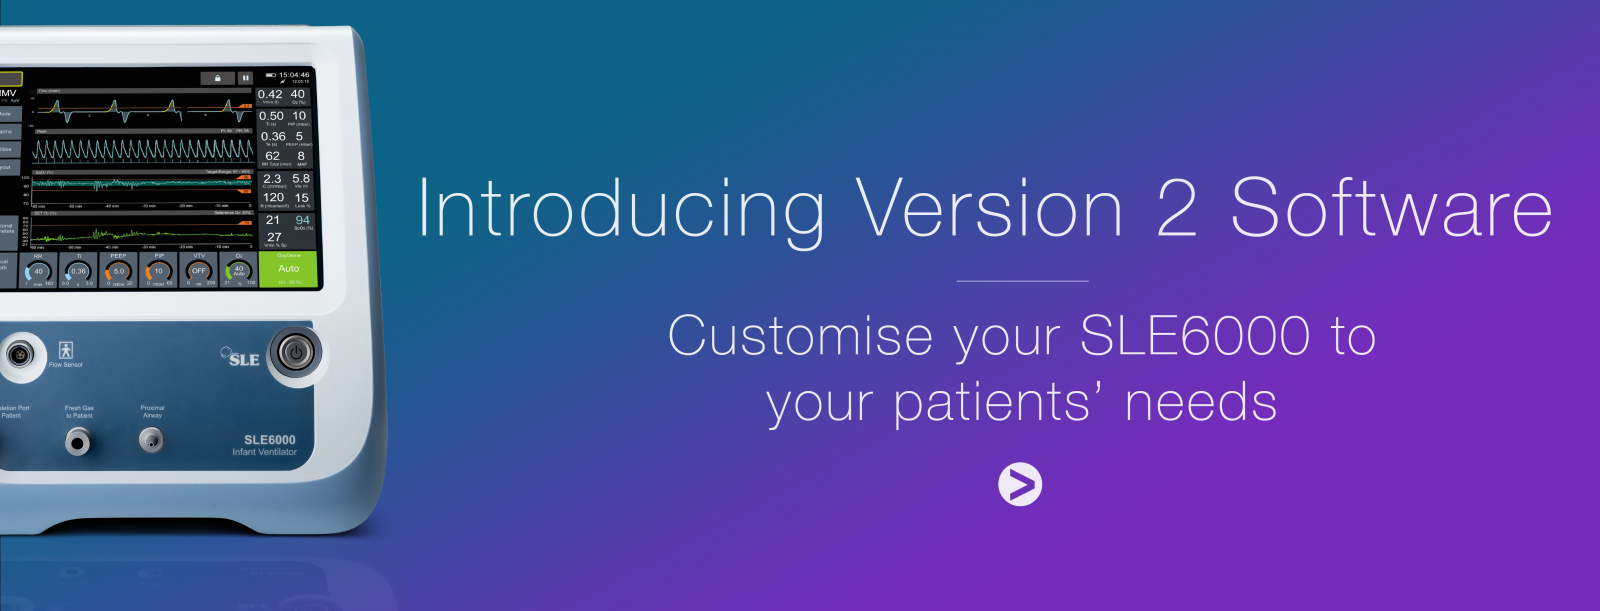 Customise your SLE6000 to your patients' needs!